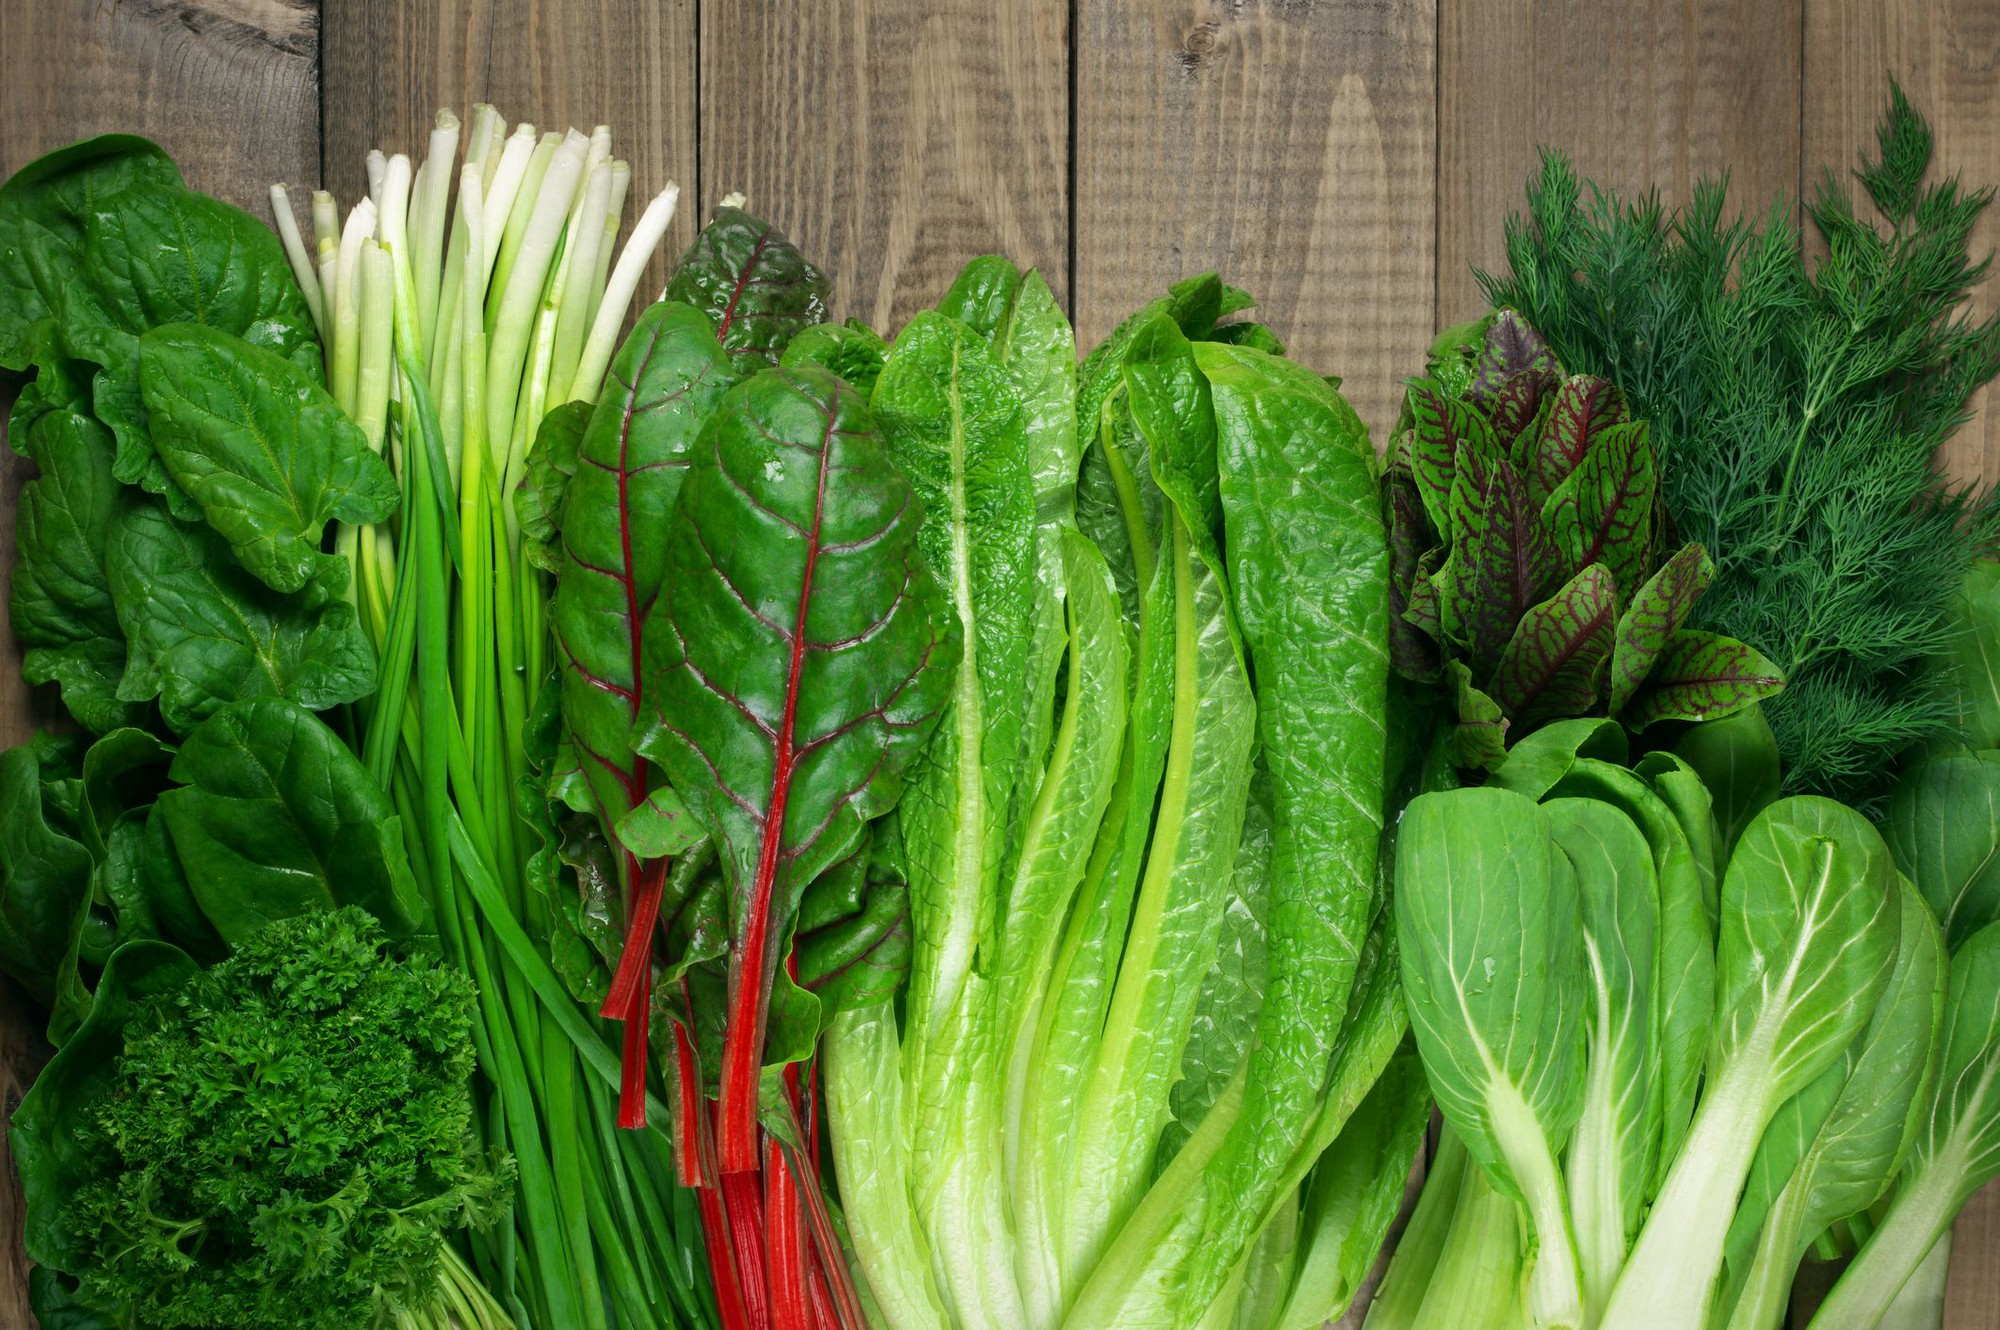 various-leafy-vegetables-royalty-free-image-512993458-1561061572